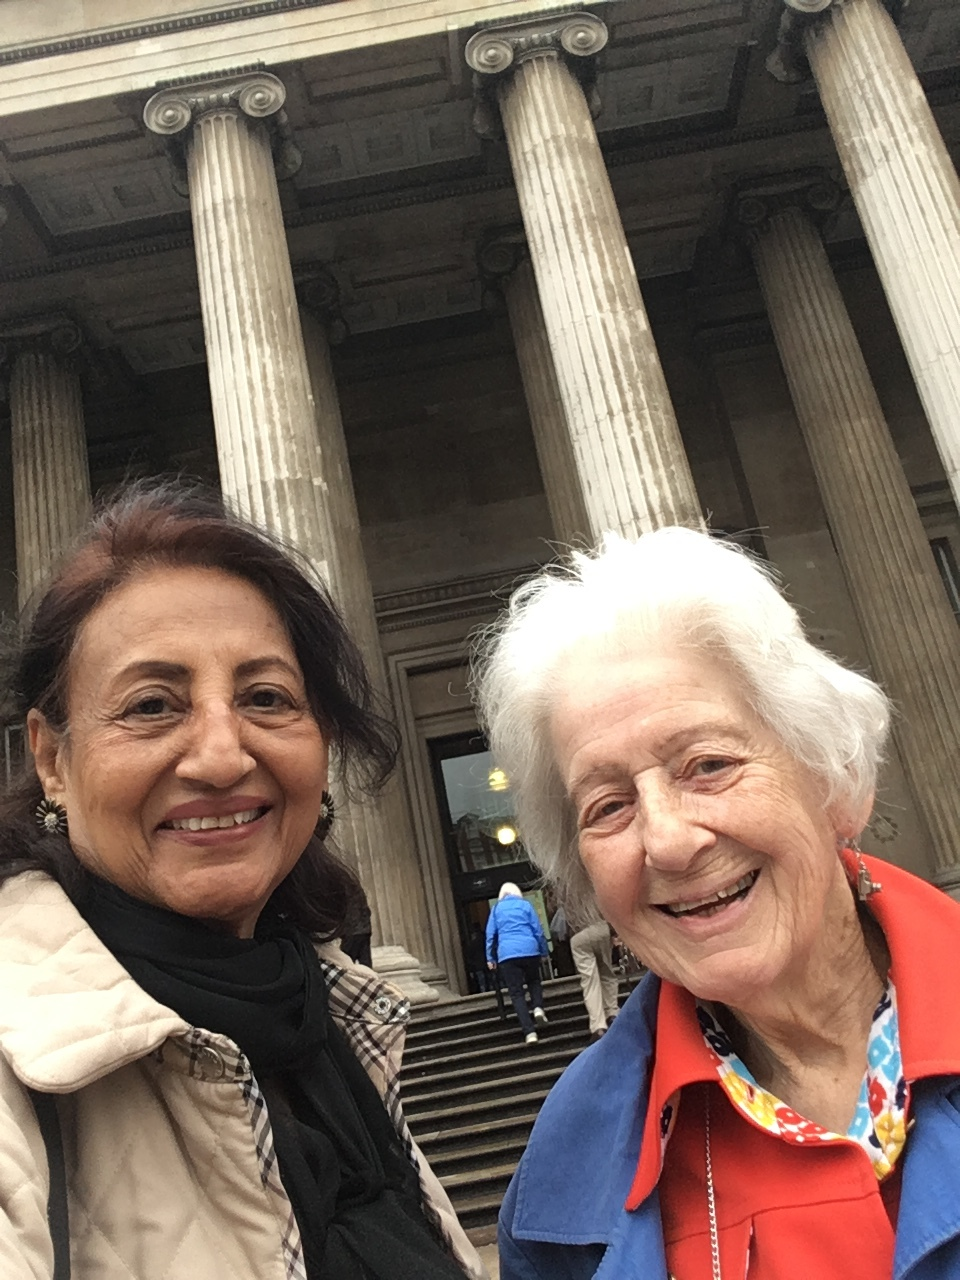 Shahana and fellow OPAG member Elizabeth Ann visit the British Museum